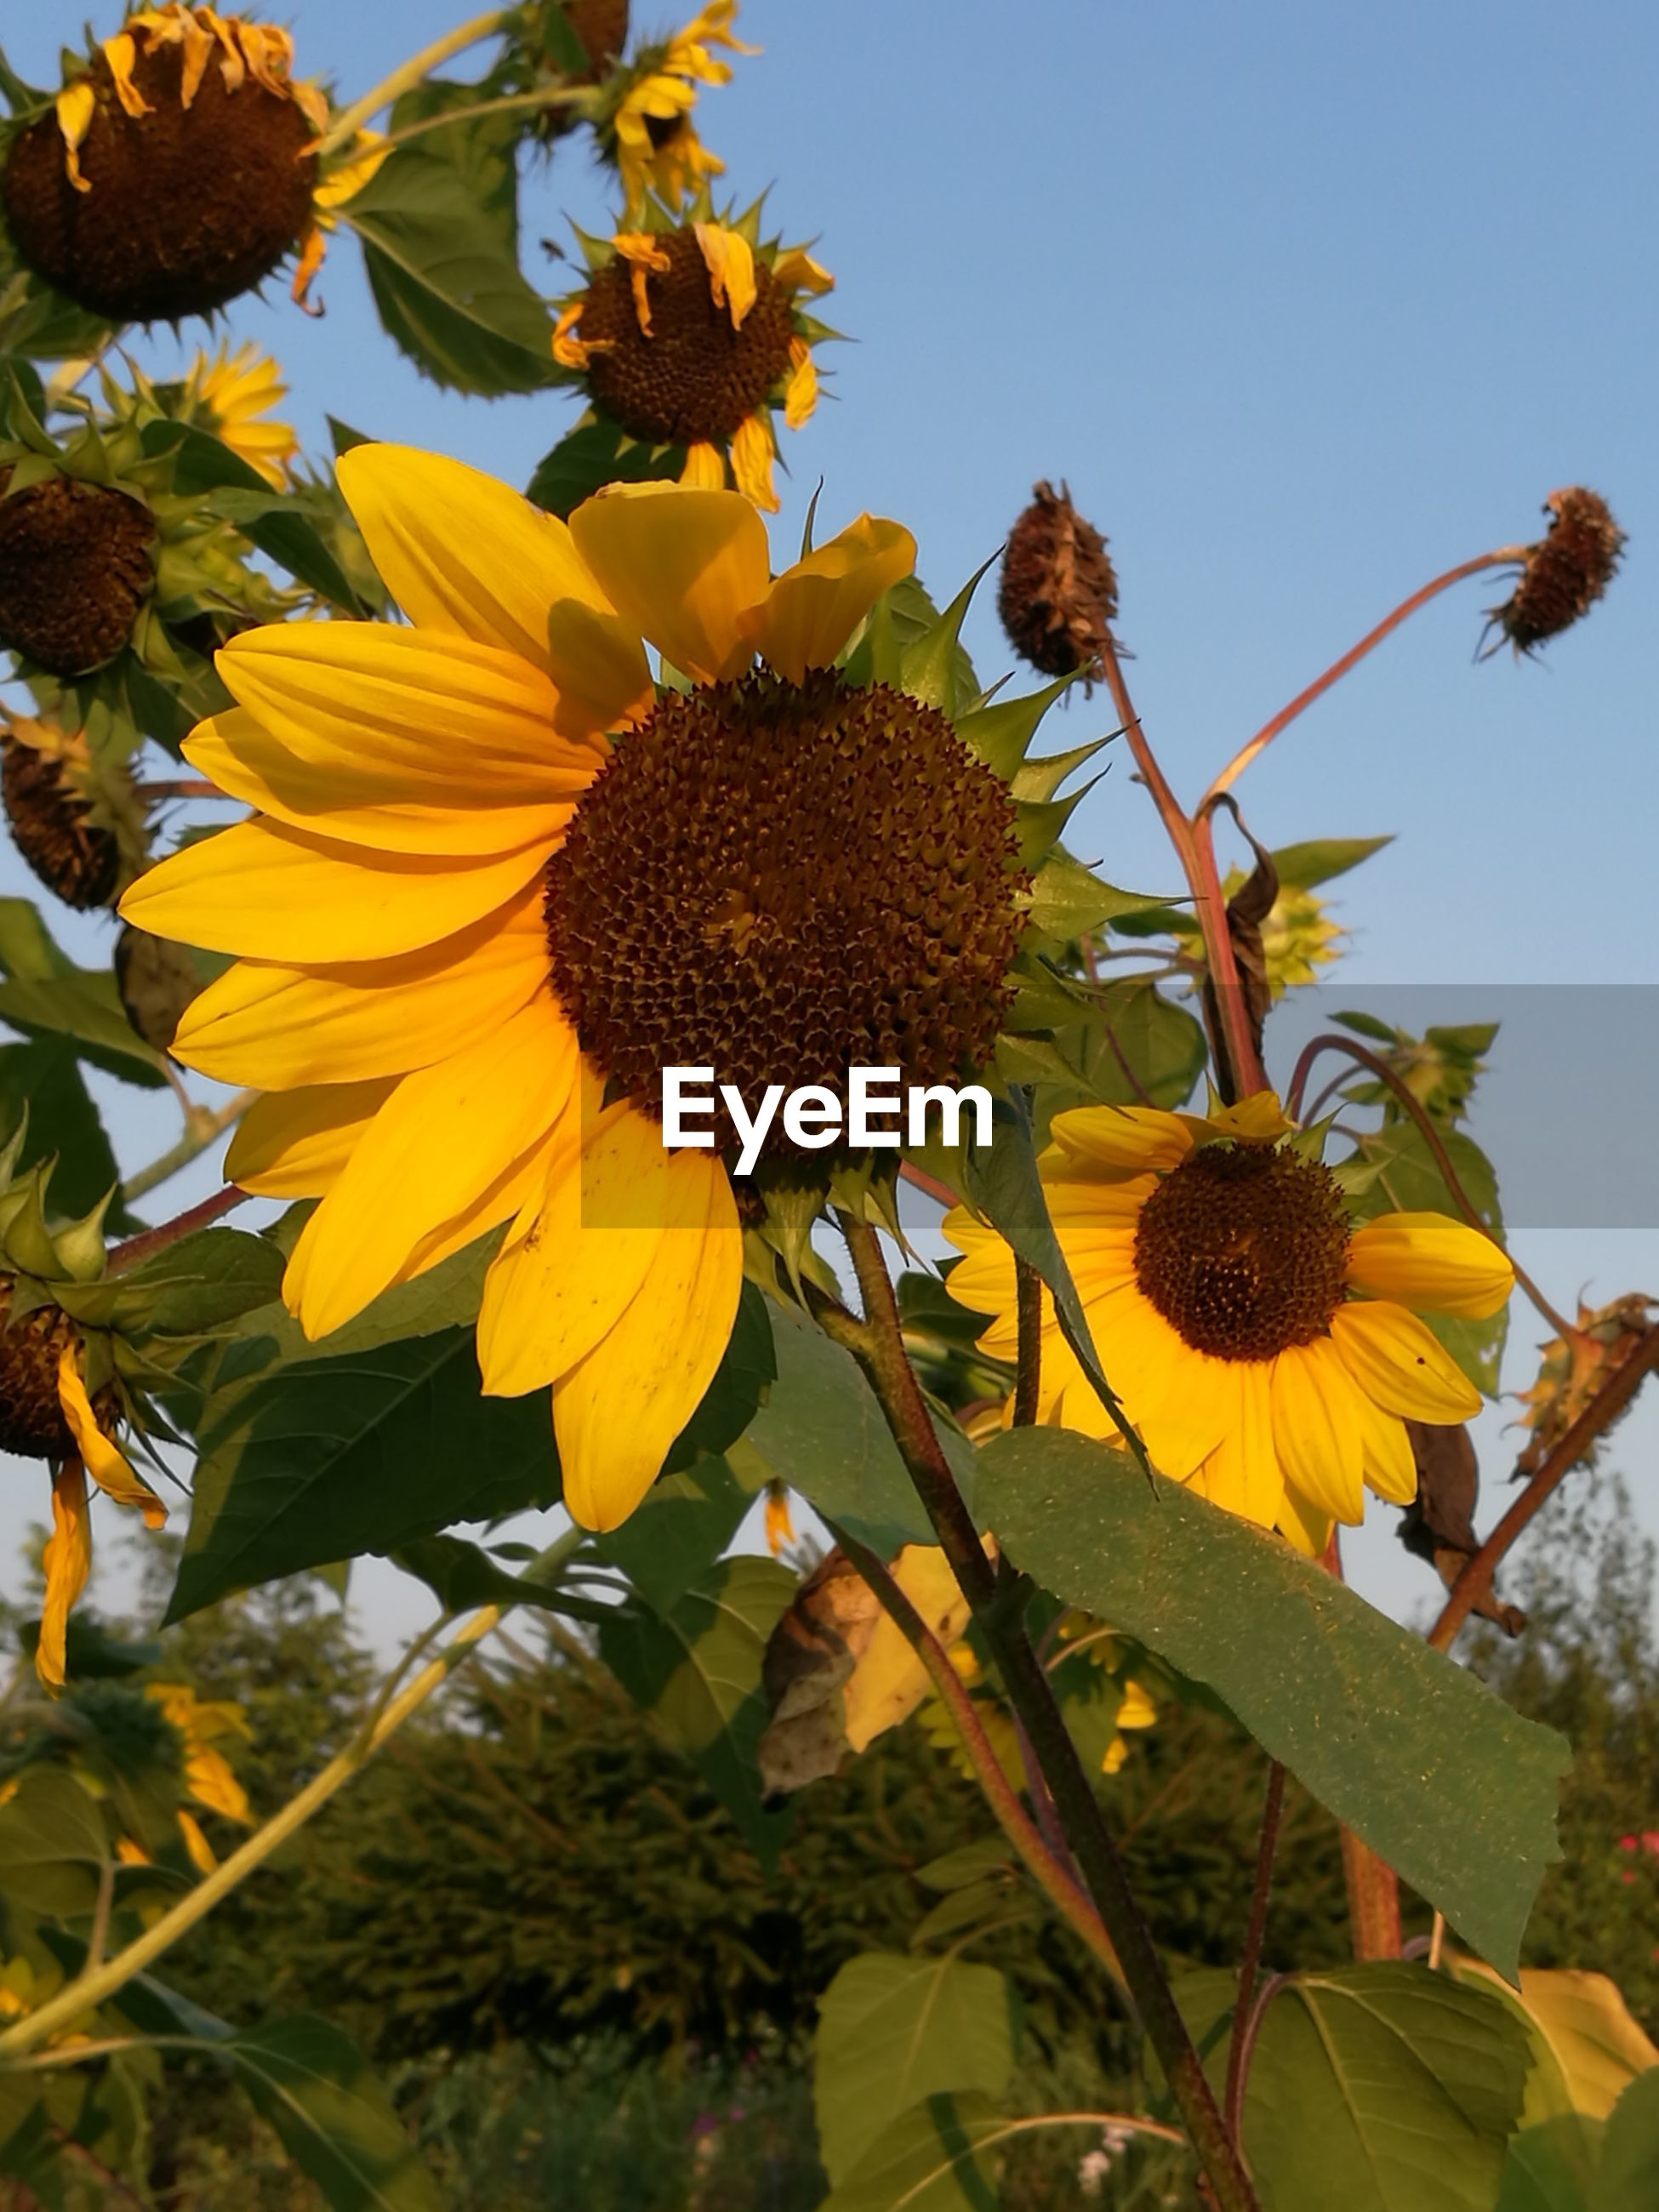 LOW ANGLE VIEW OF SUNFLOWER BLOOMING AGAINST CLEAR SKY